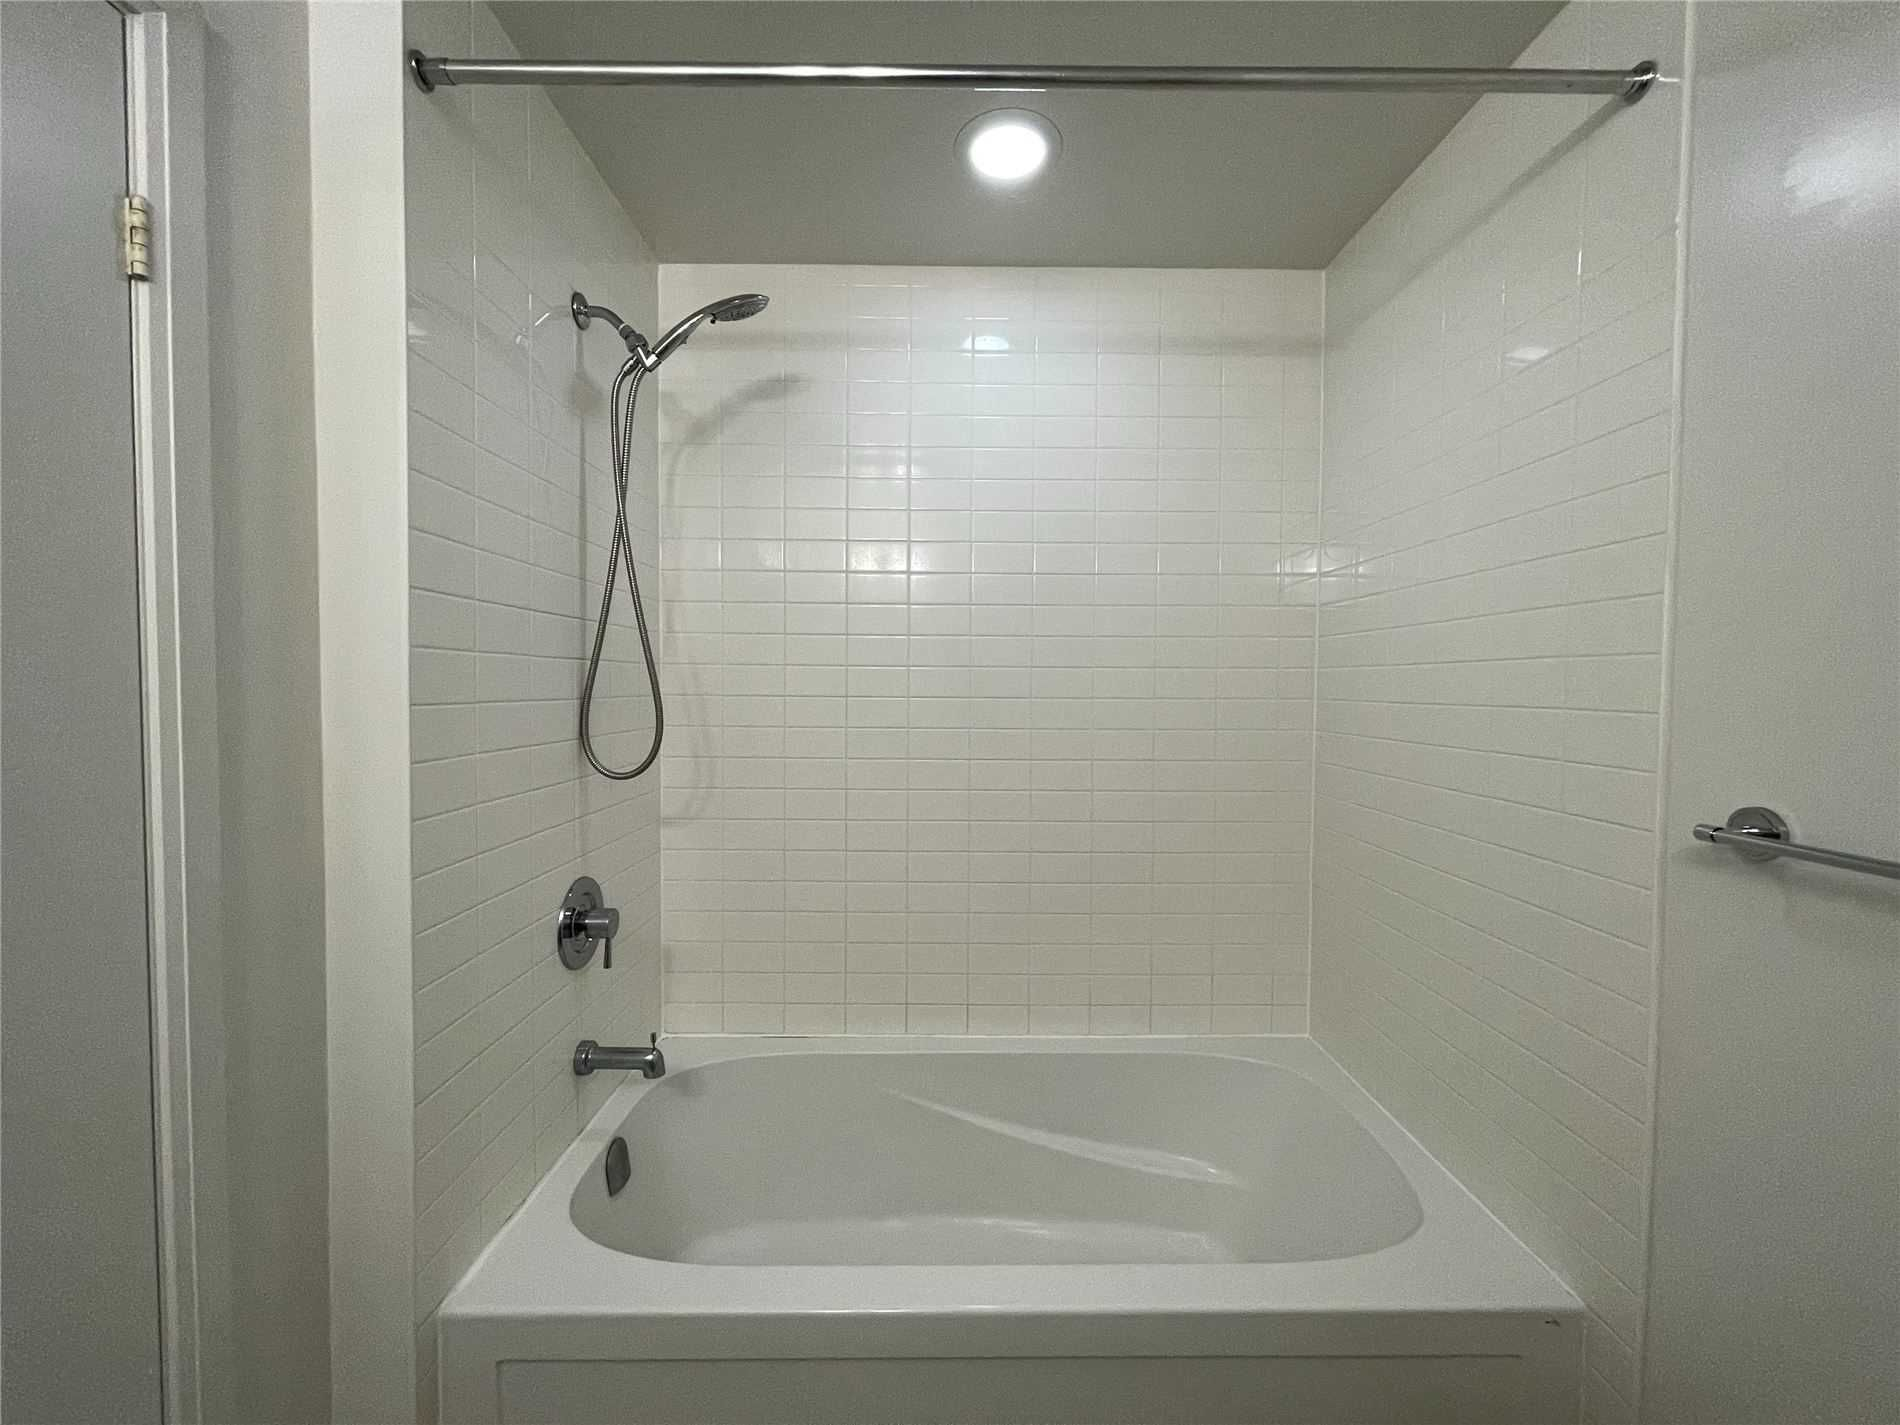 88 Sheppard Ave E, unit 1503 for rent in Toronto - image #2